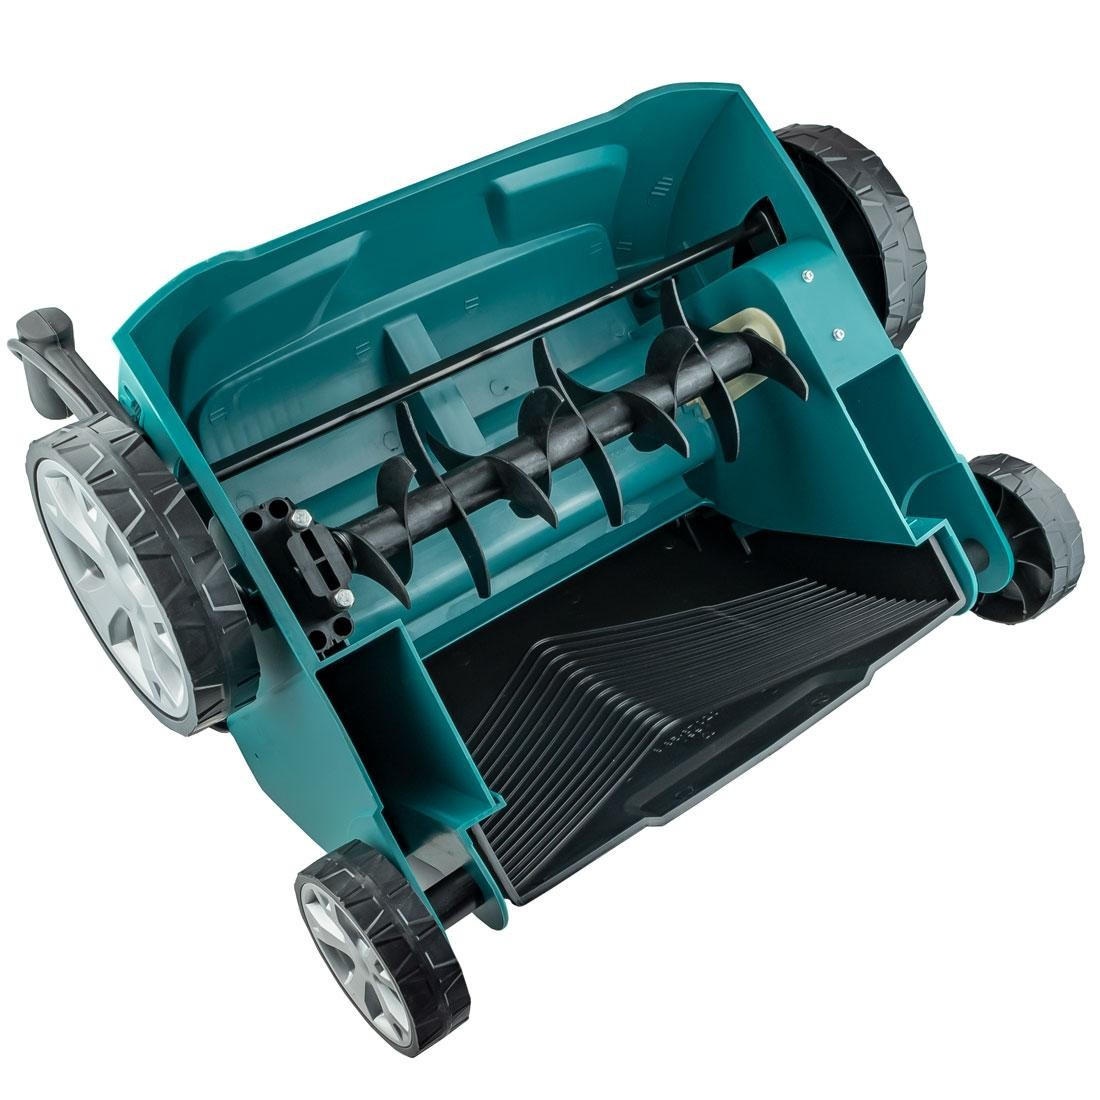 Makita Uv3200 Corded Electric Lawn Scarifier 1300w 240v